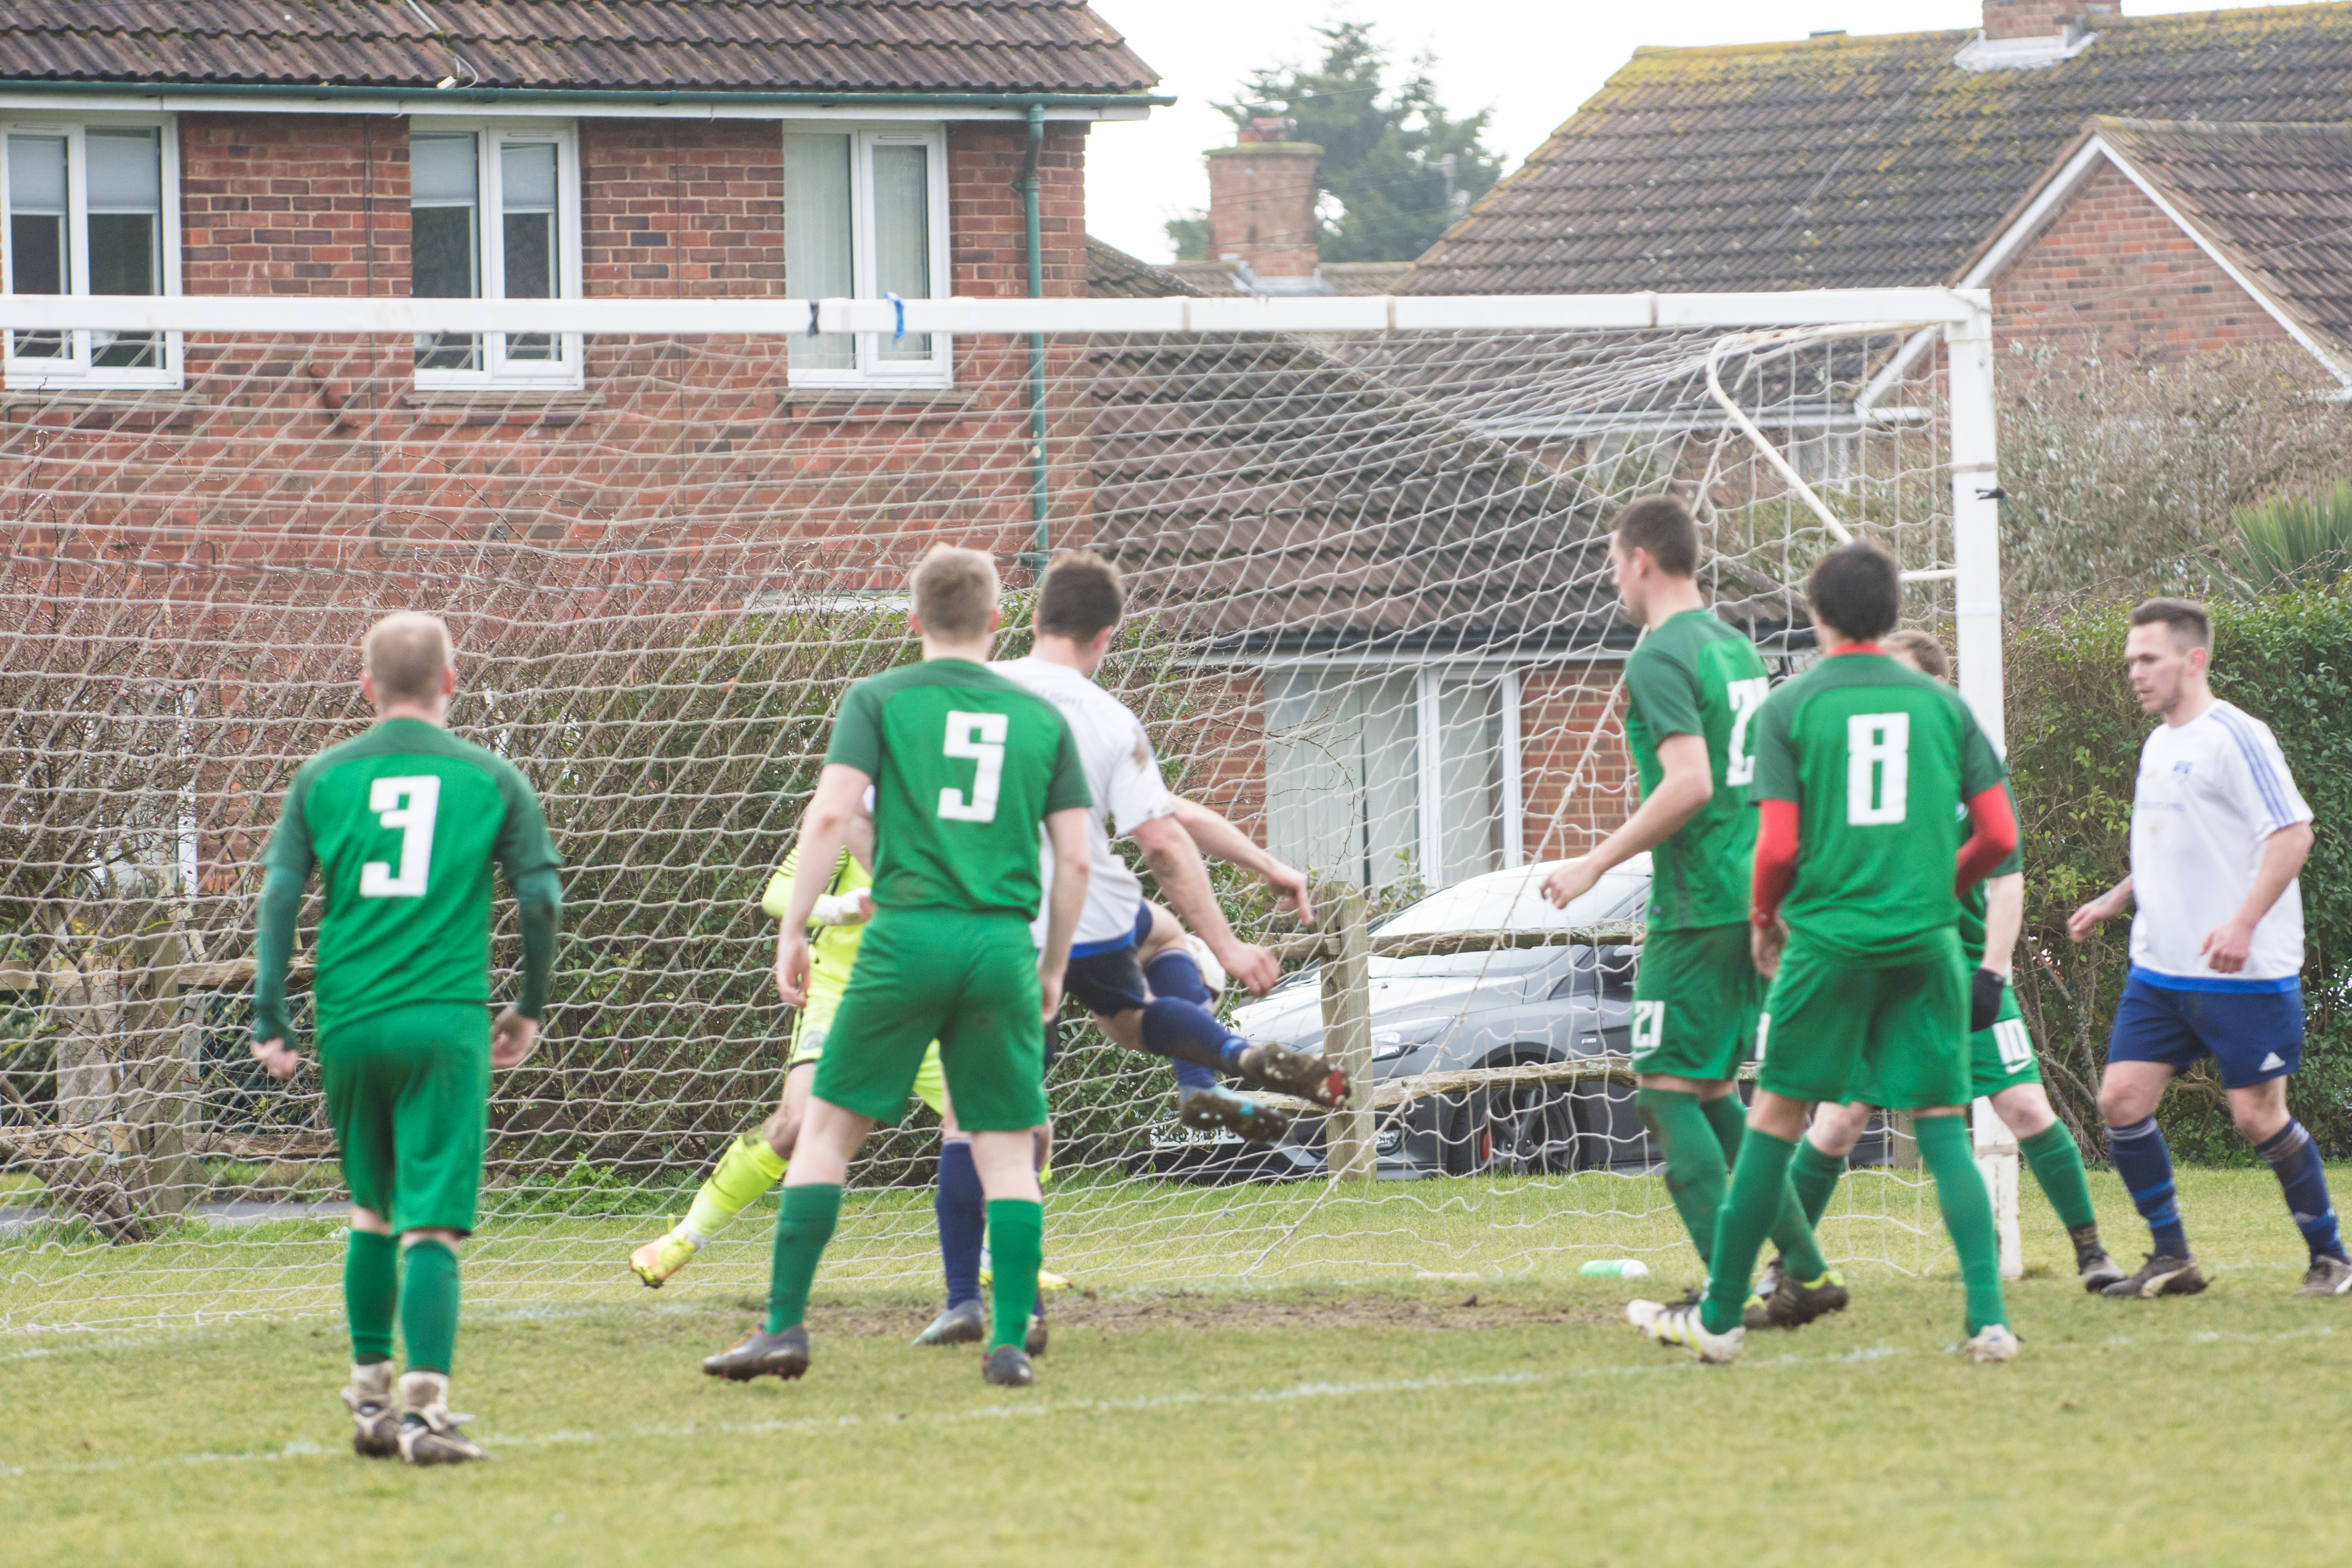 DAVID_JEFFERY FC Sporting vs Sompting 2nds 10.03.18 49